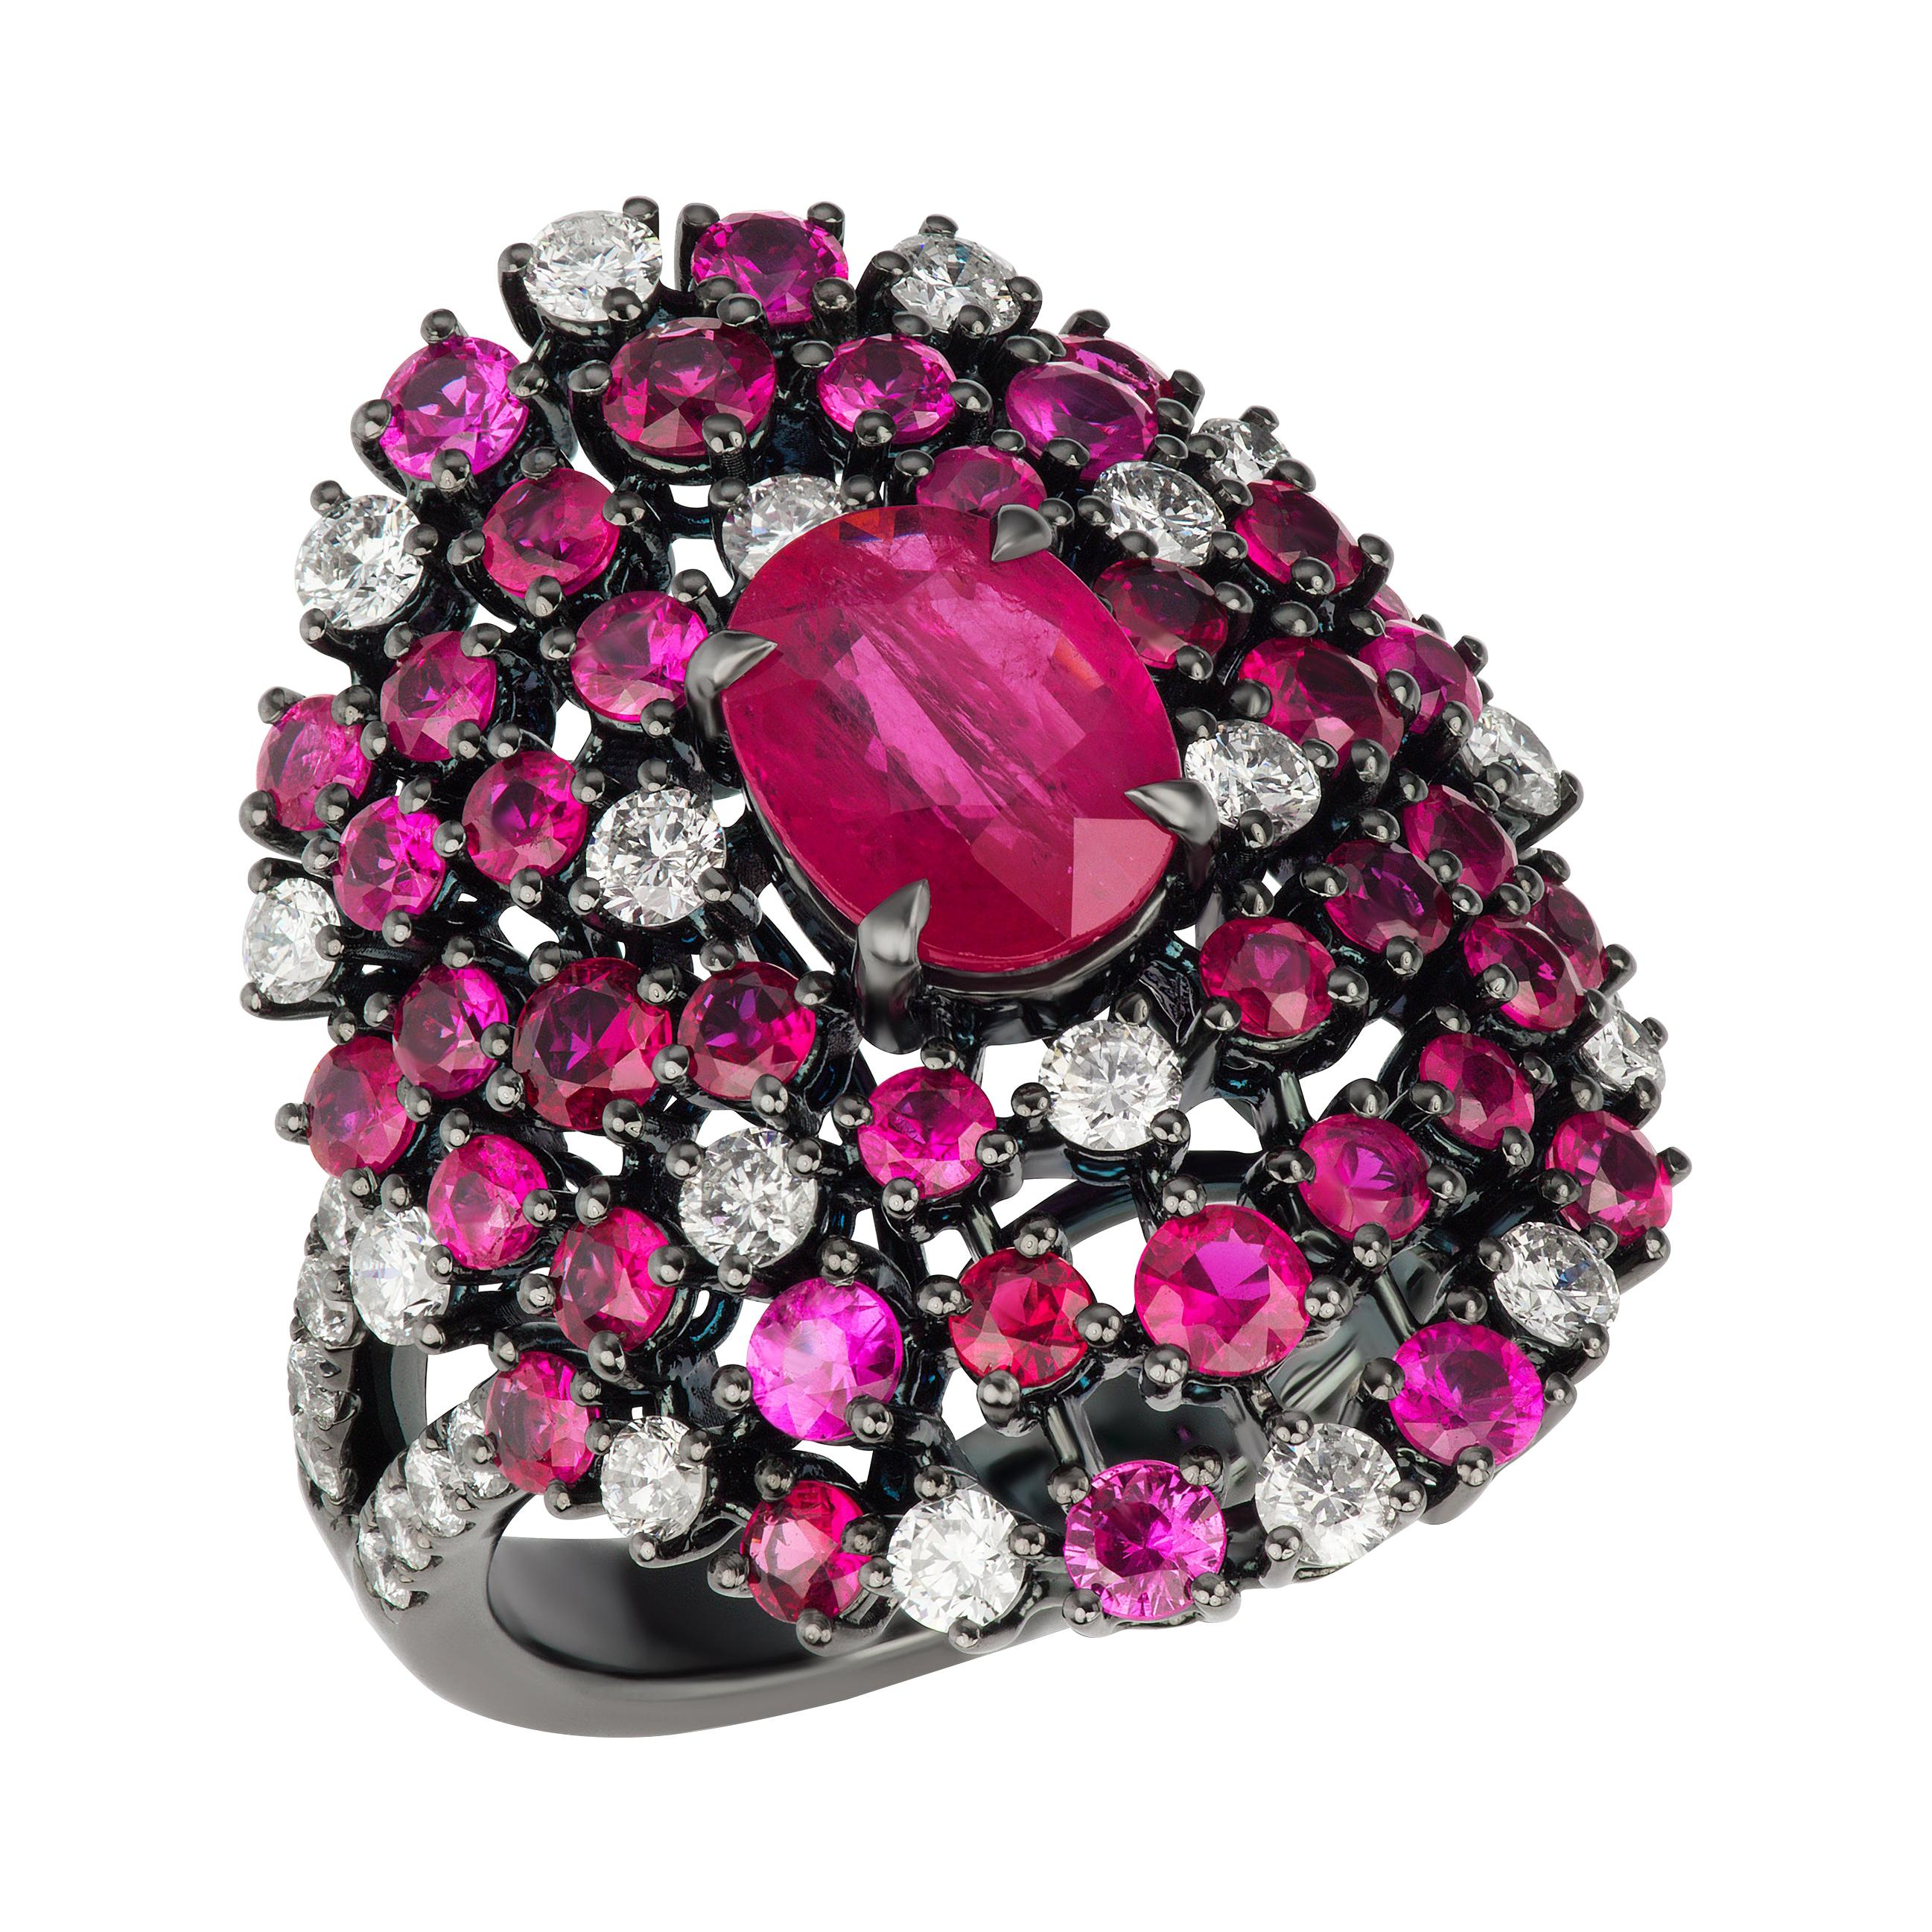 18K Gold Oval Ruby and Diamond Ring with Black Rhodium